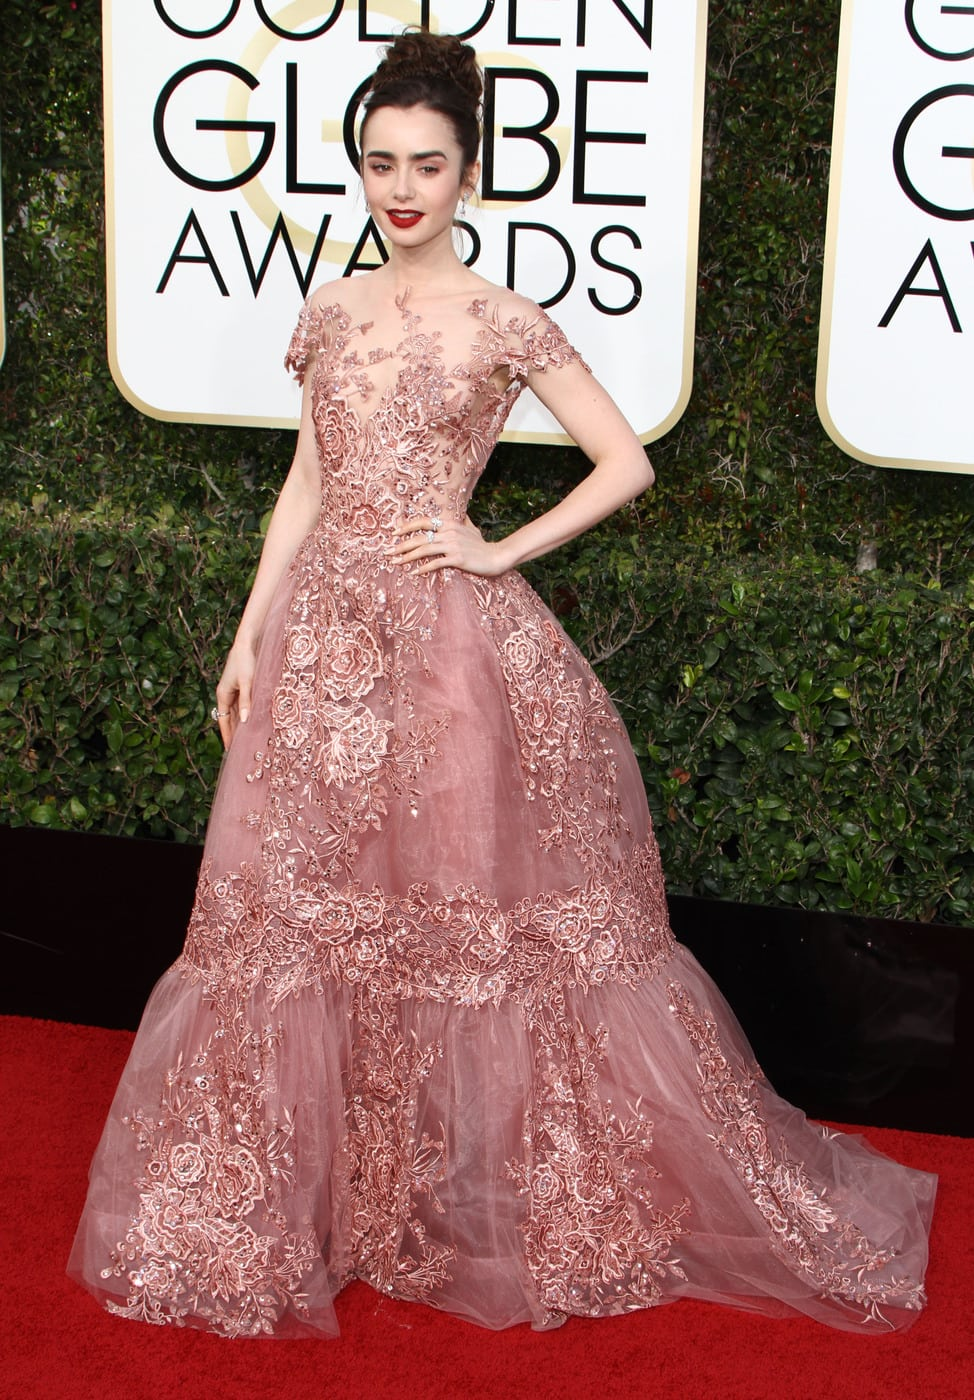 Lily Collins in a pink Zuhair Murad Couture gown on the 2017 Golden Globes red carpet